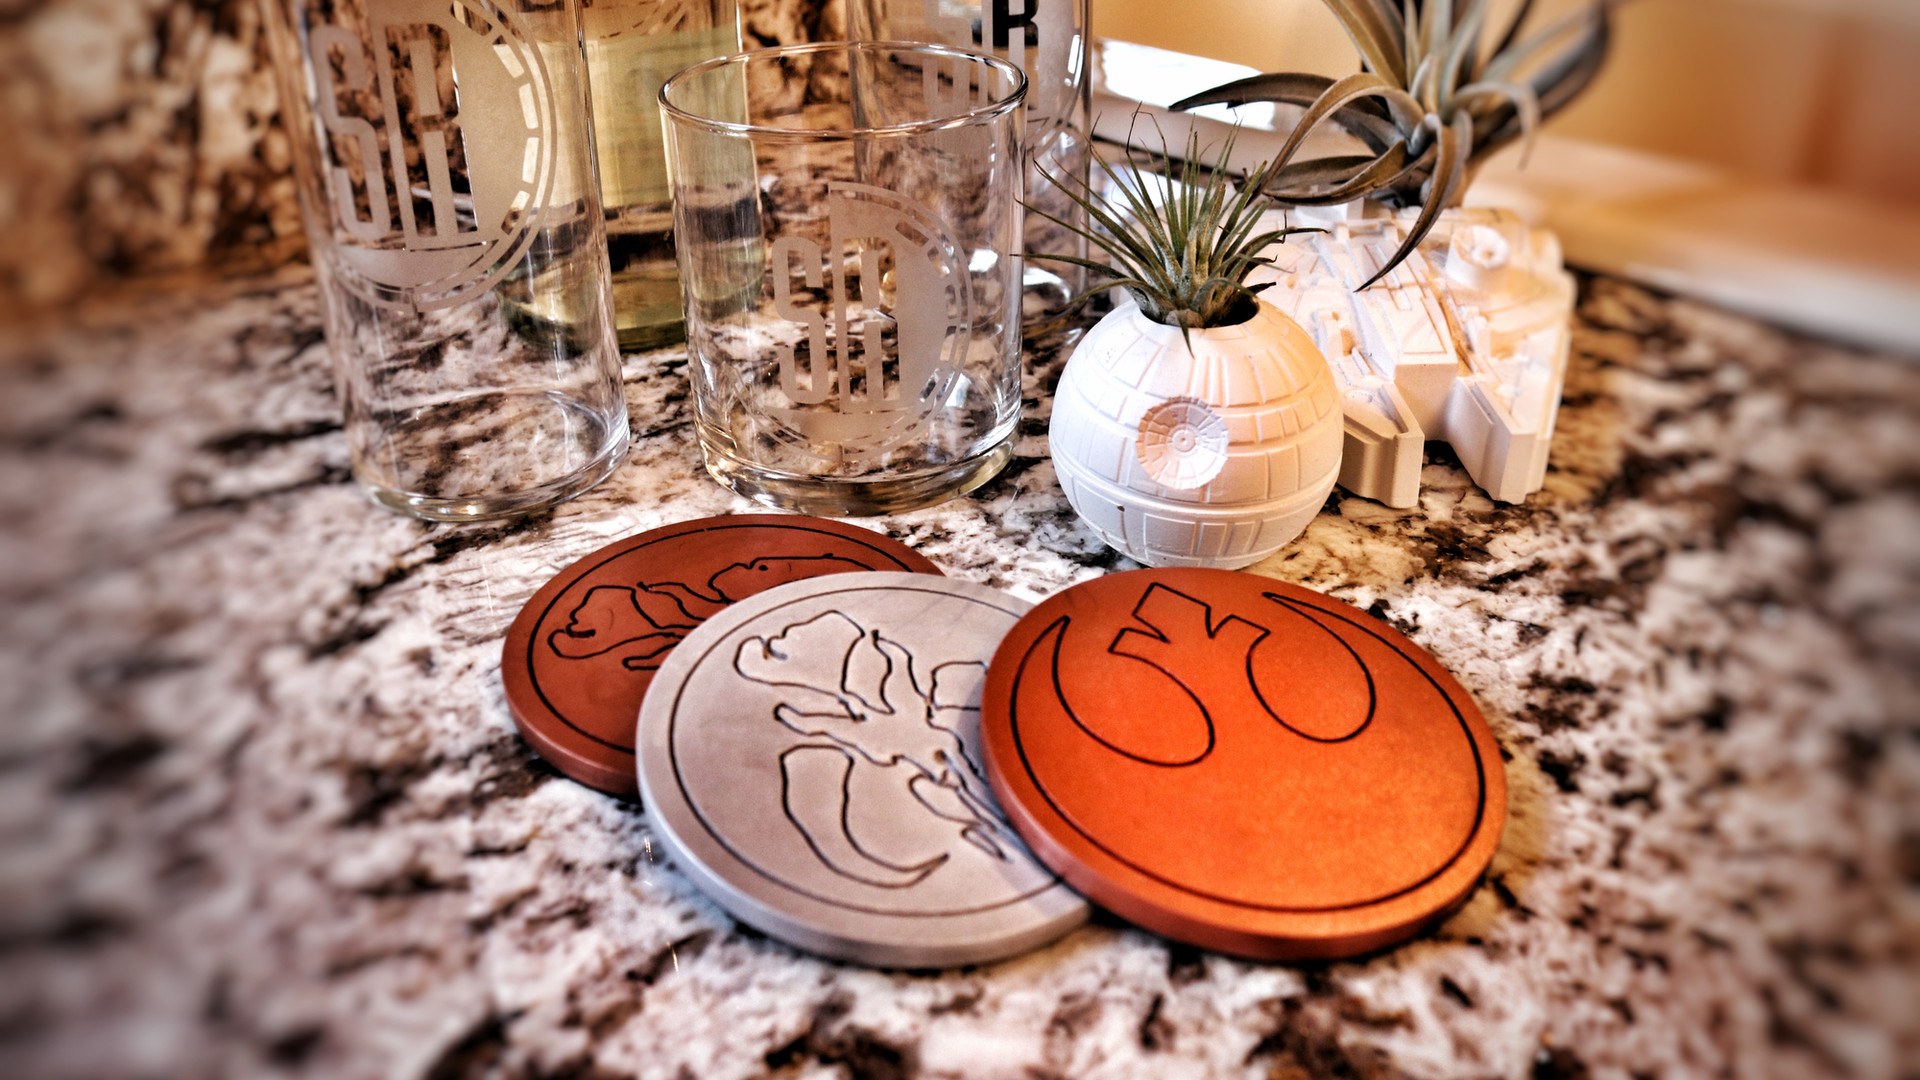 Etched SR Glasses and Coasters